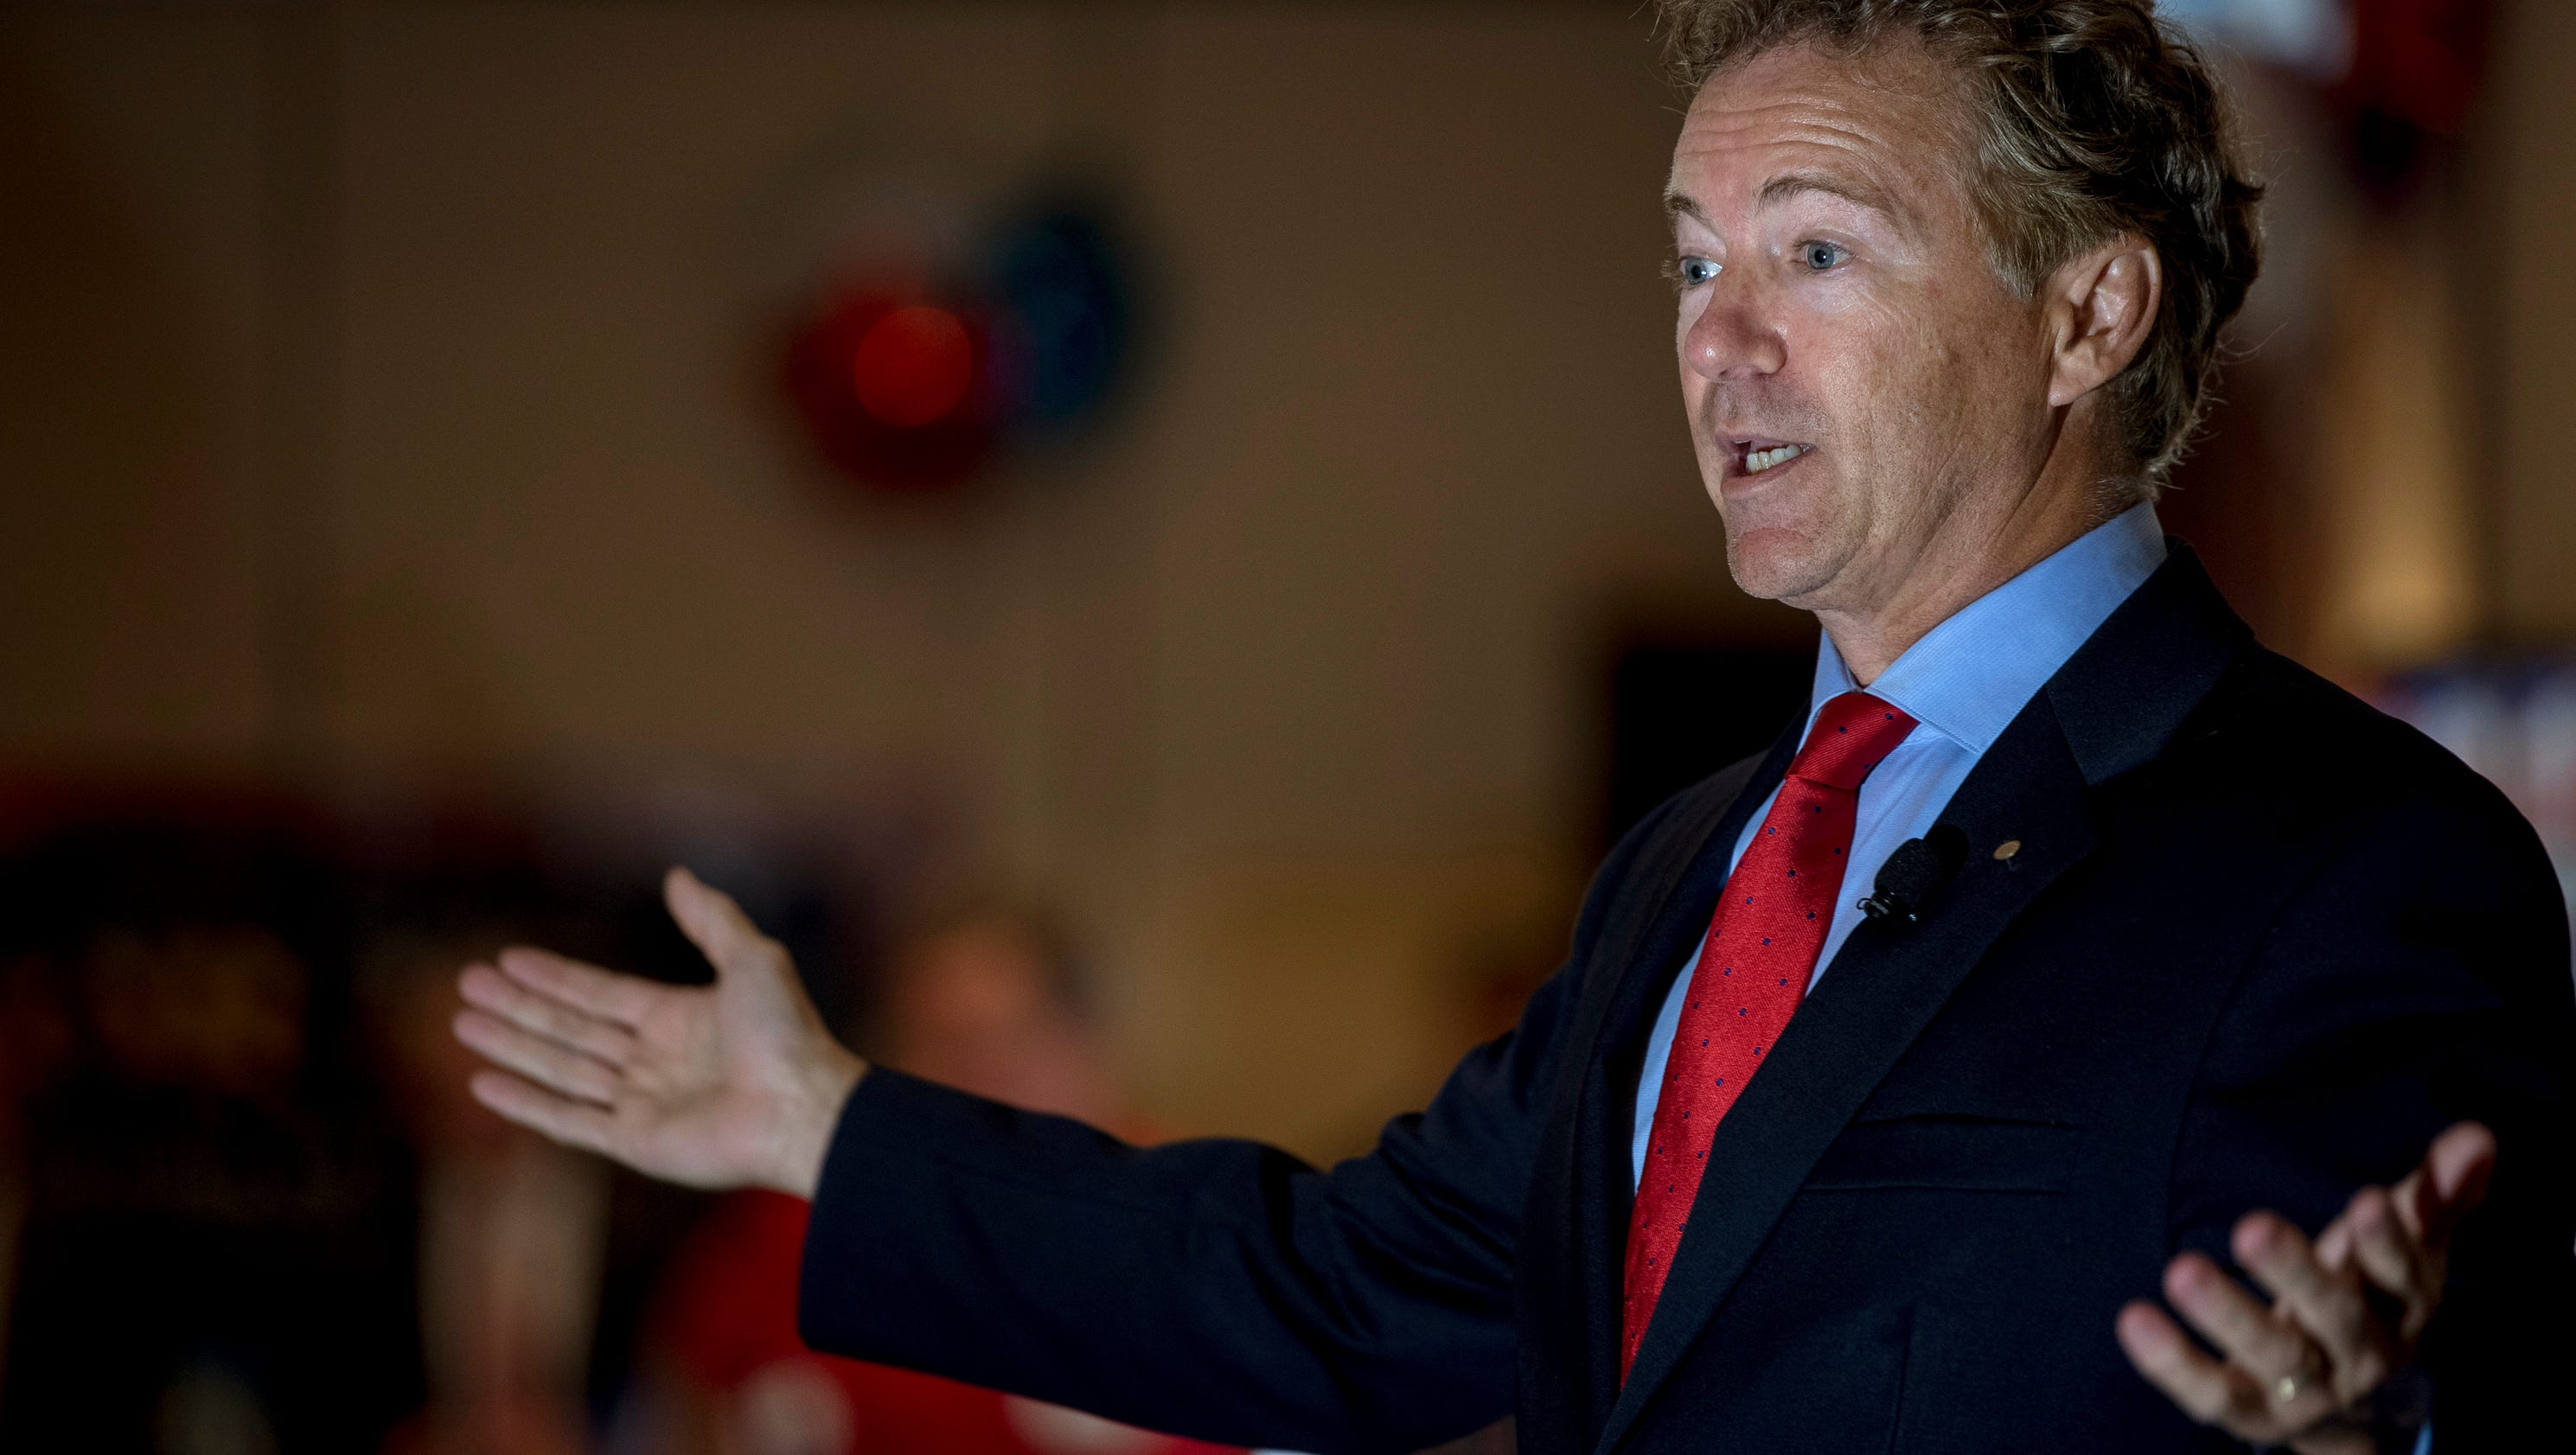 Sen. Rand Paul assaulted at his Kentucky home, man arrested